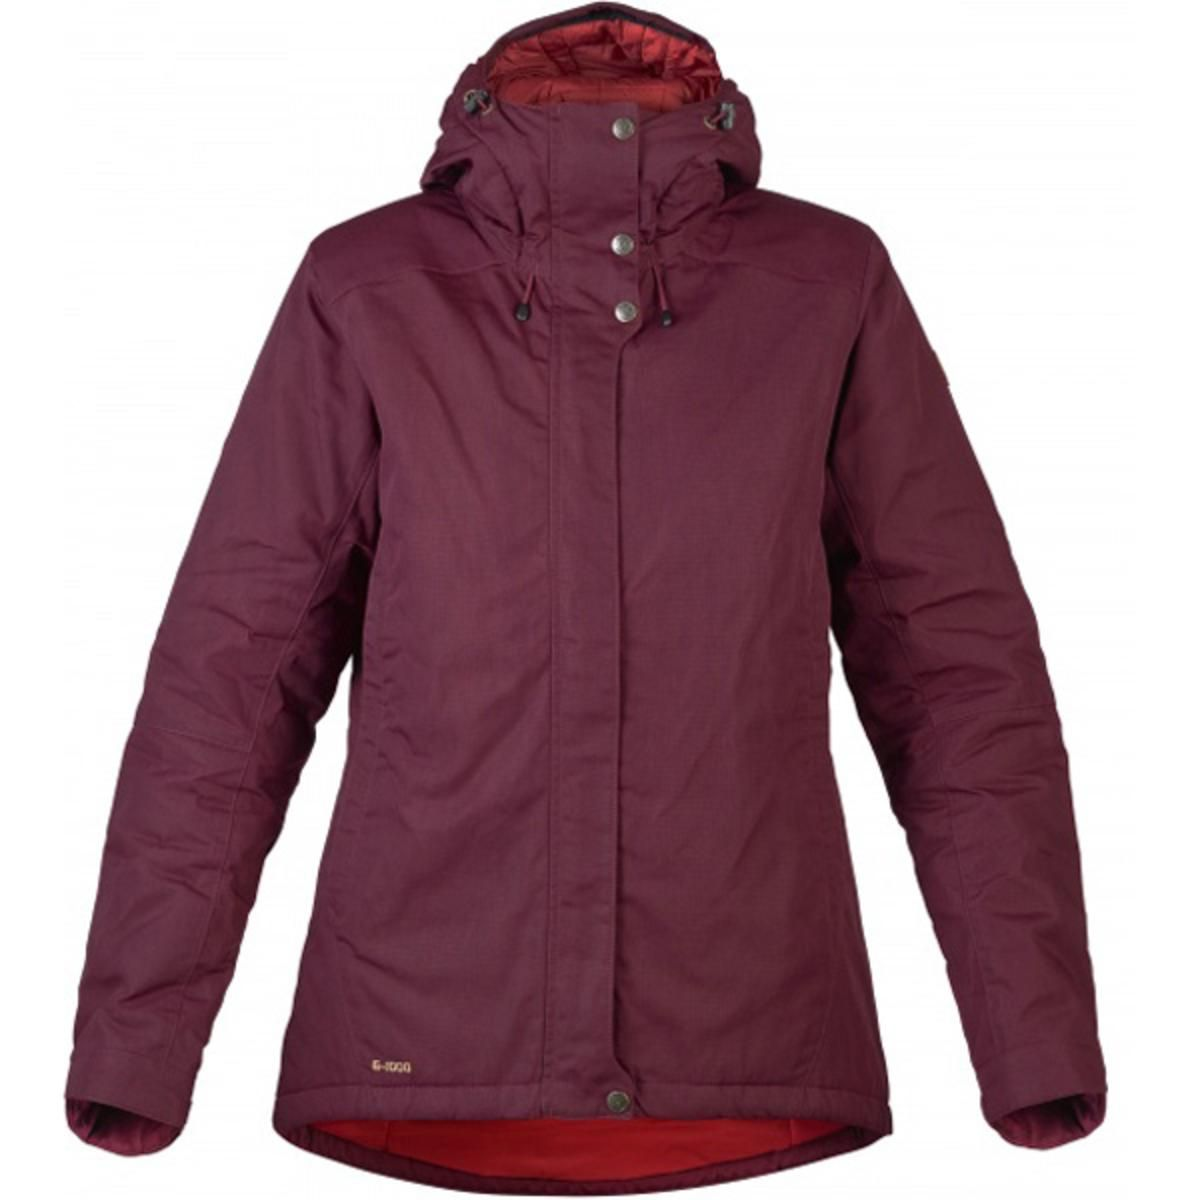 699a353b FjallRaven Women's Skogso Padded Jacket - The Warming Store